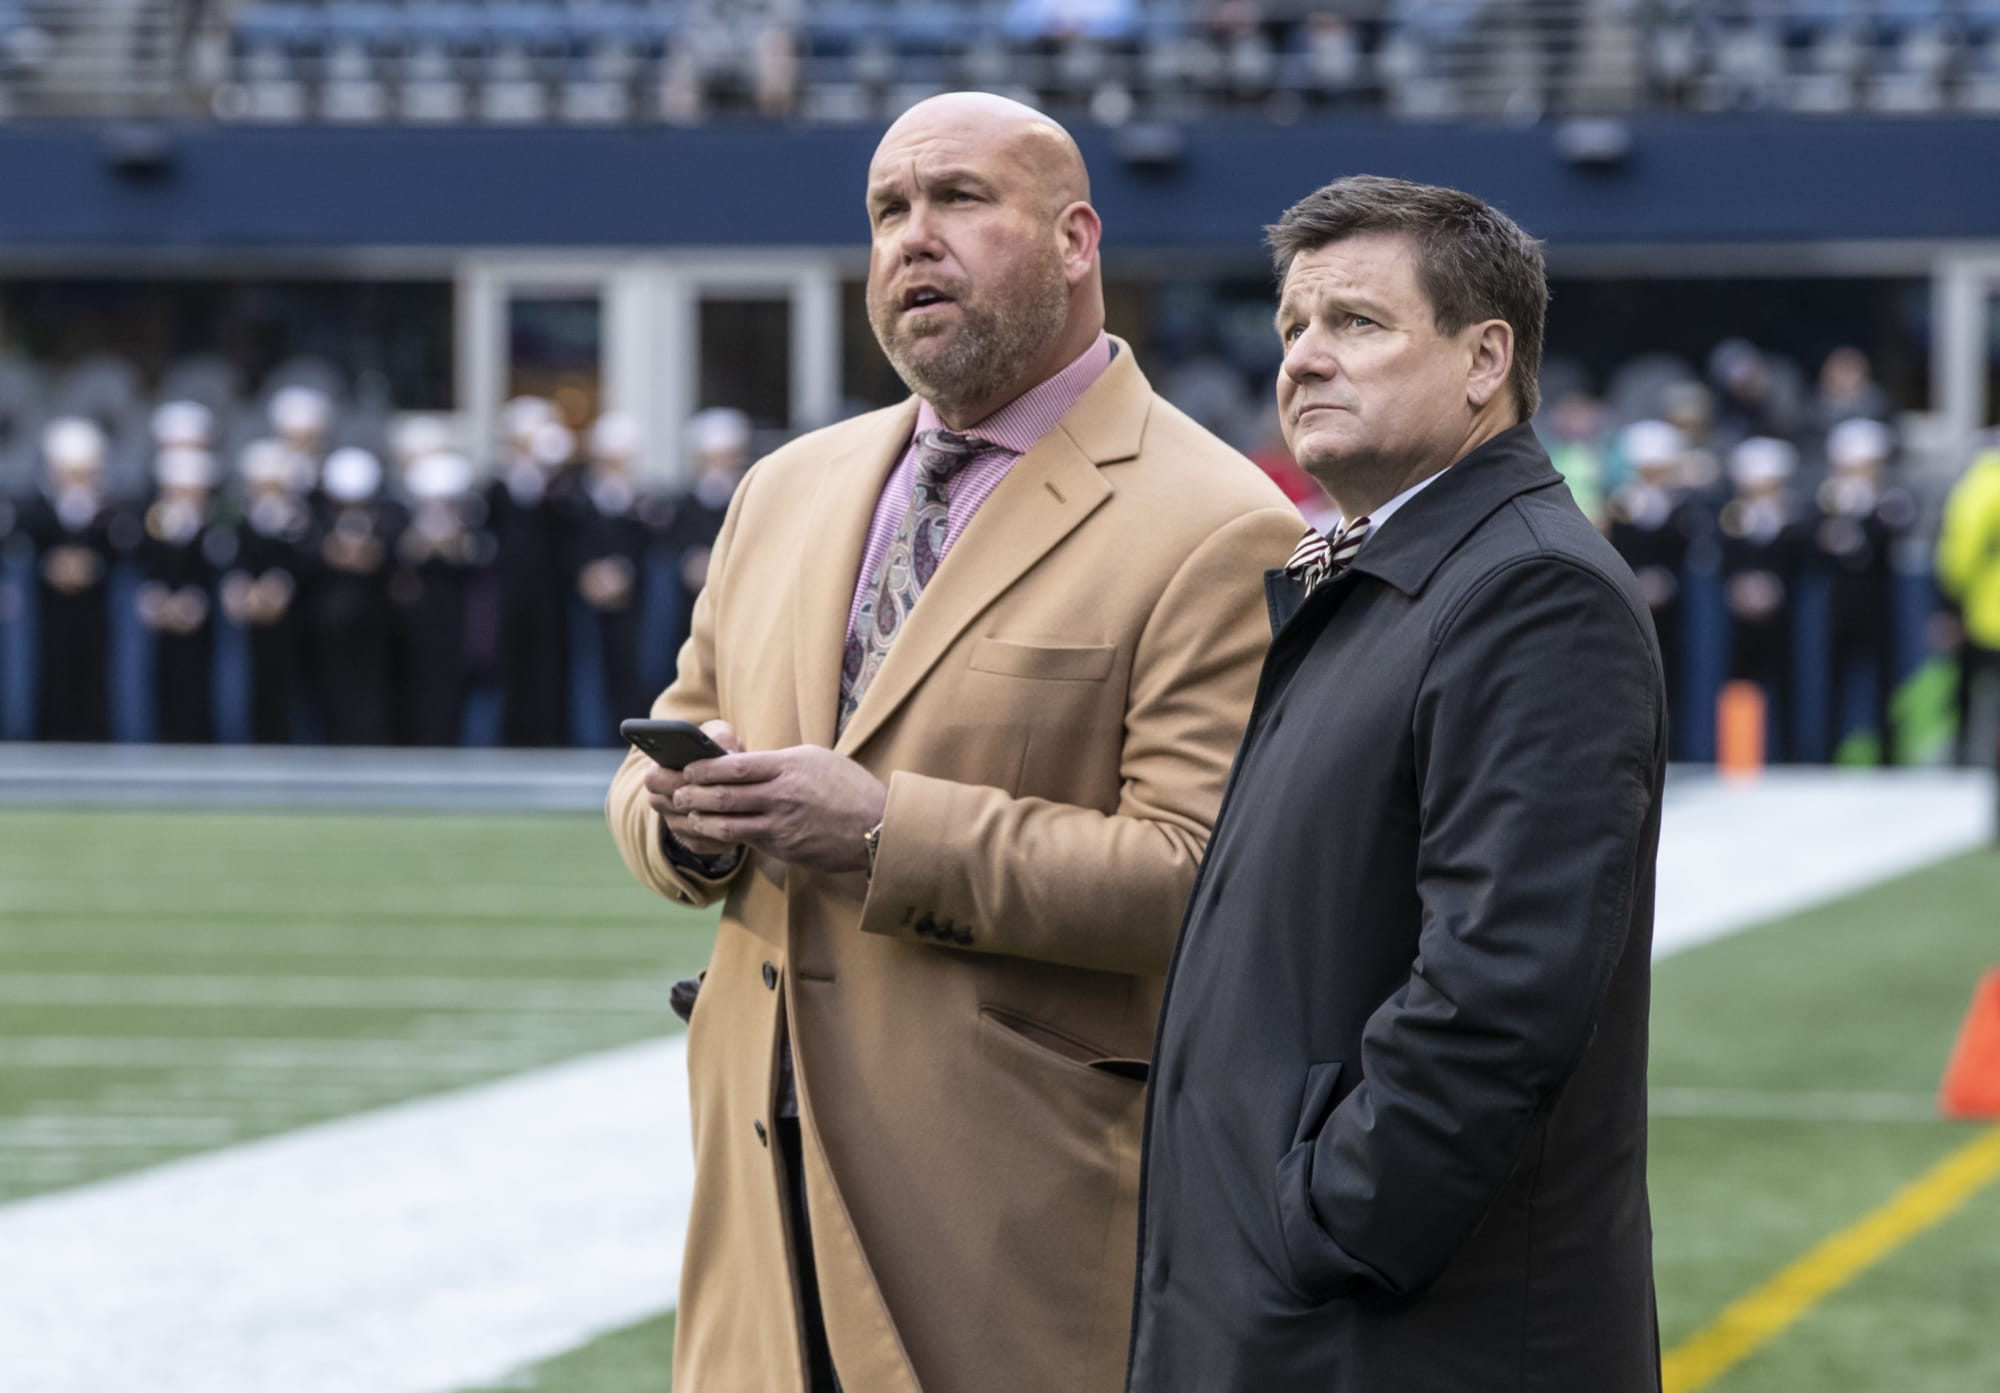 Arizona Cardinals general manager could be on the hot seat